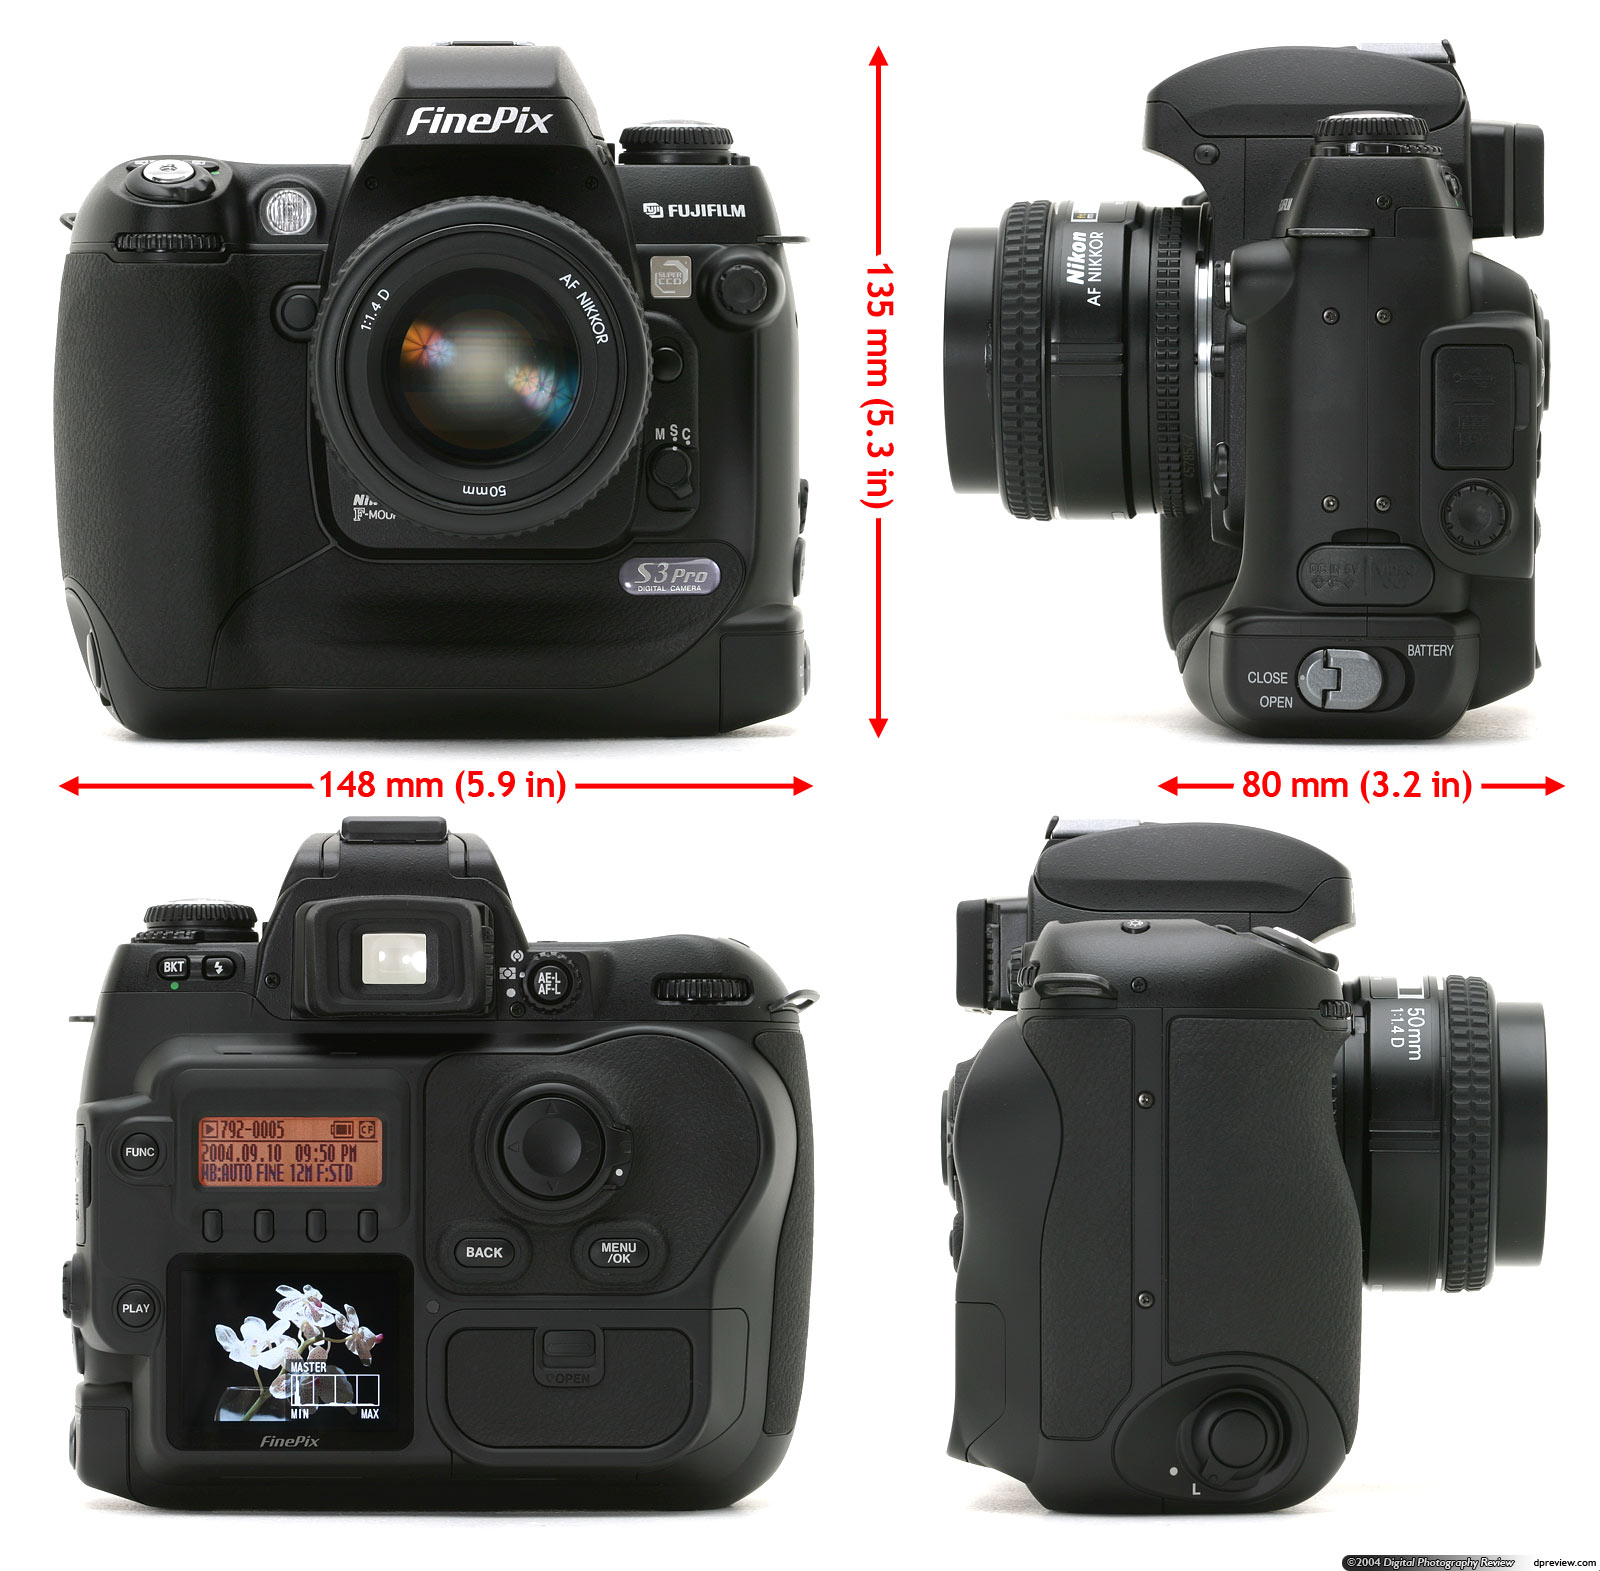 fujifilm finepix s2 pro manual